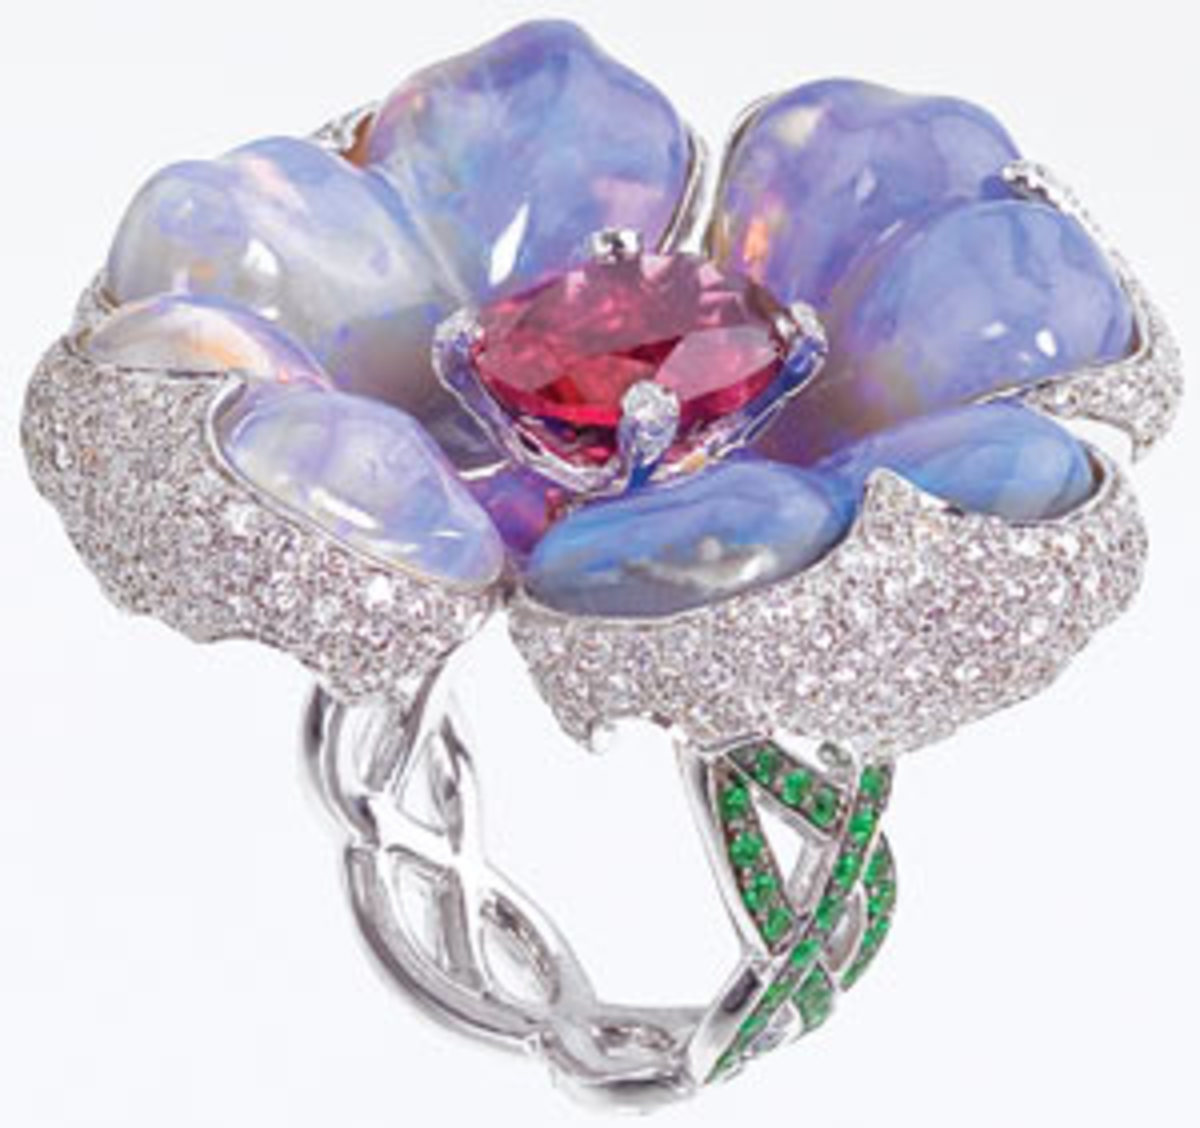 Carved opal and gemstone ring by Katherine Jetter from modernjeweler.com